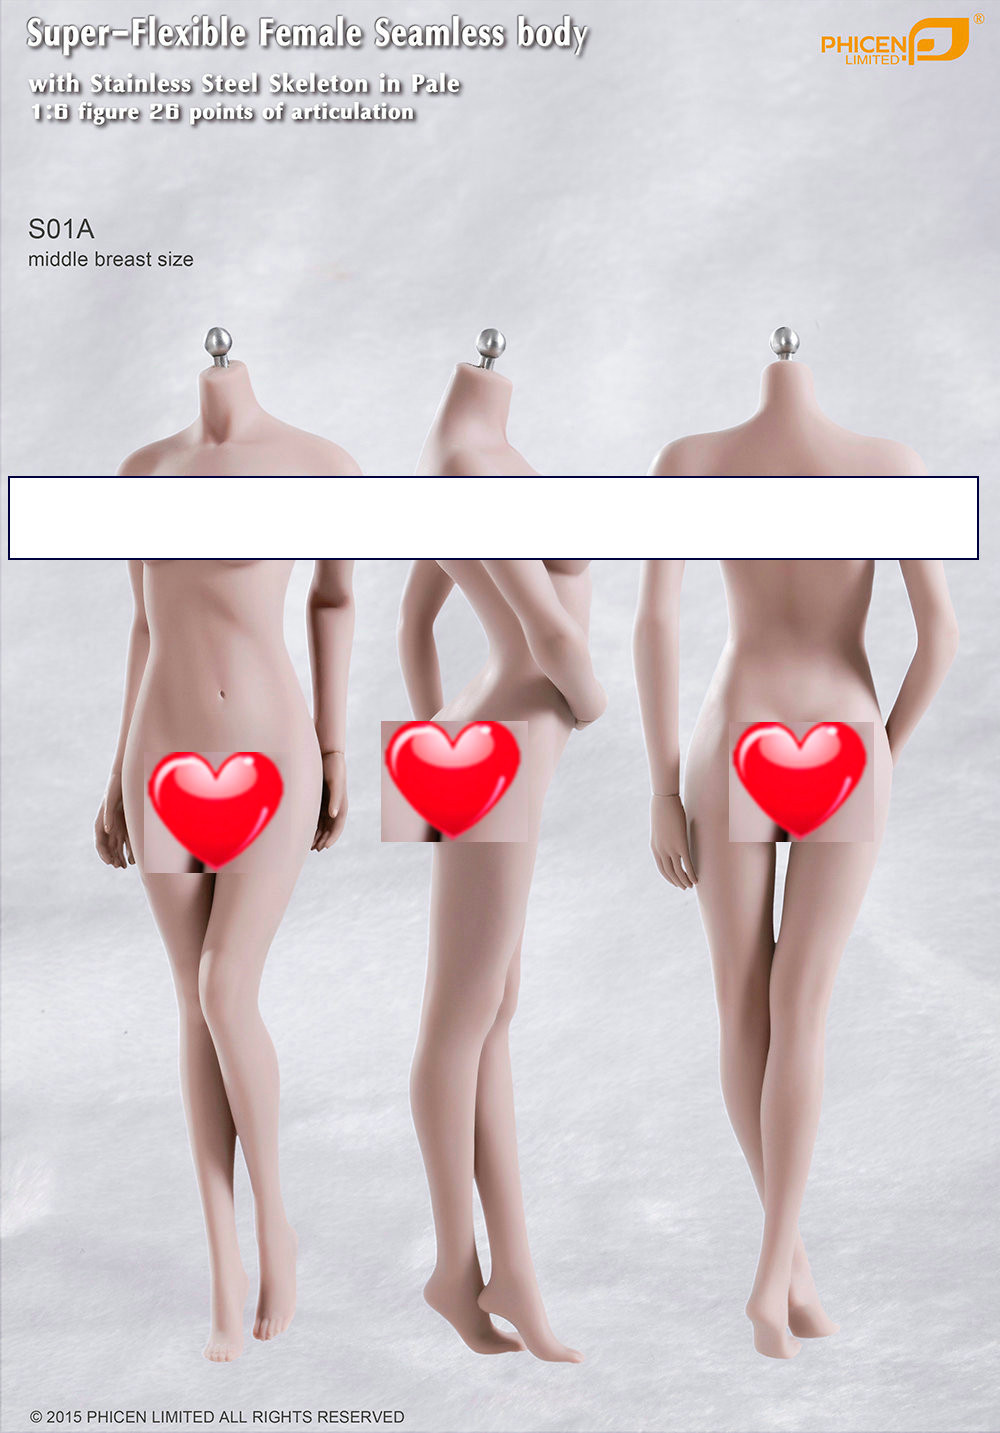 phicen male action figure female 1 6 Scale Super Flexible Seamless MID bust body w Steel